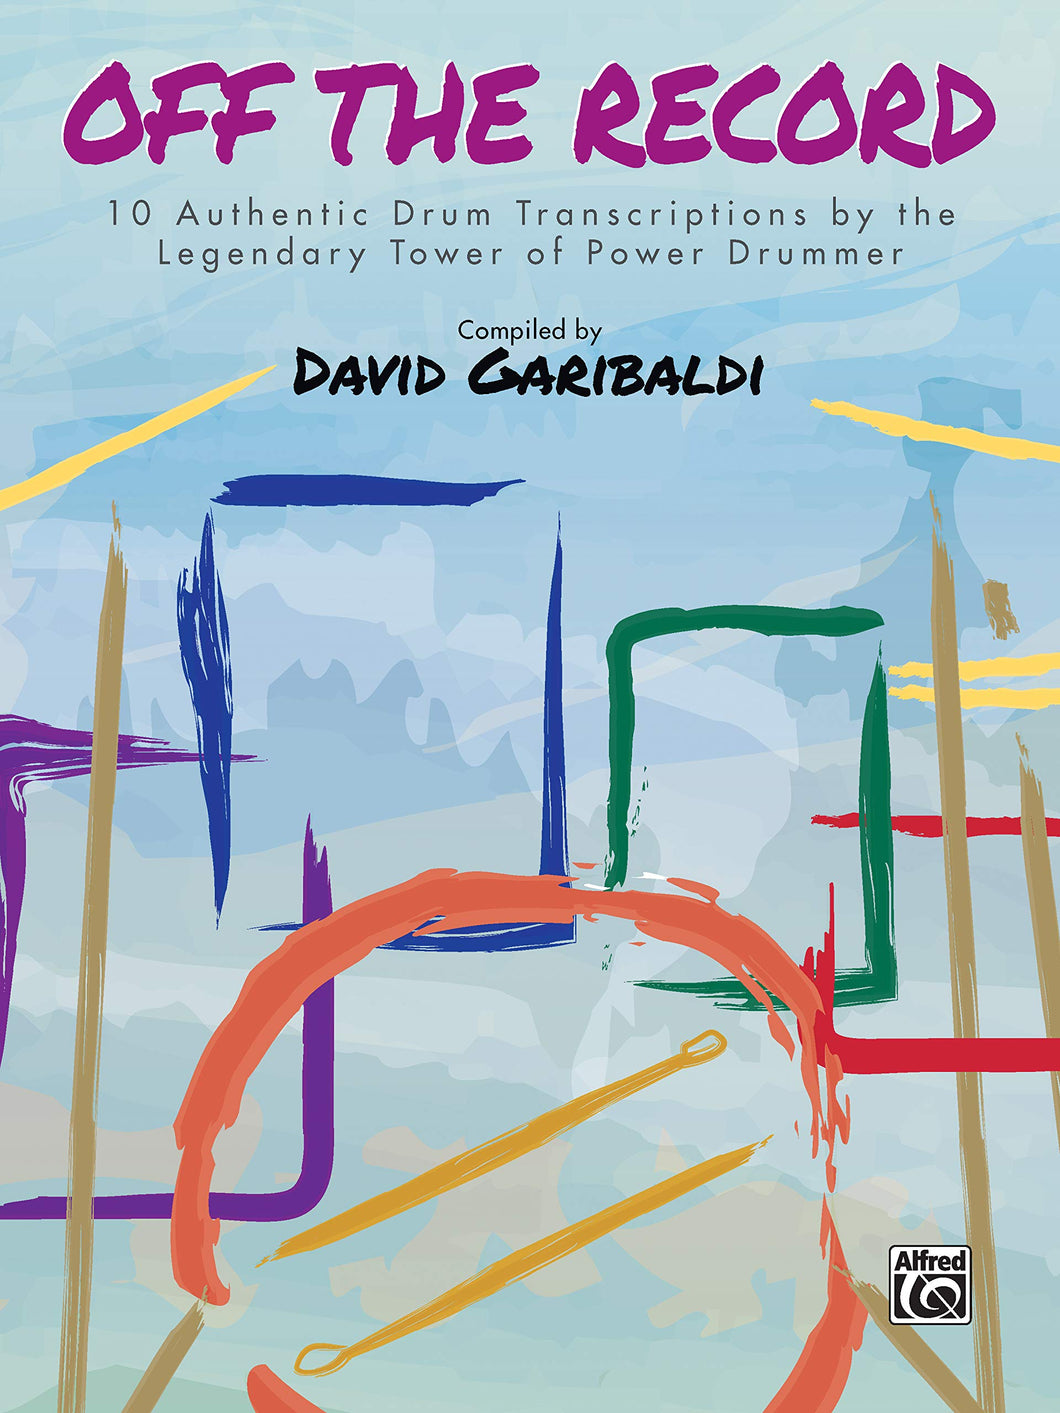 Soul Vaccination - David Garibaldi - Collection of Drum Transcriptions / Drum Sheet Music - Alfred Music DGOTR